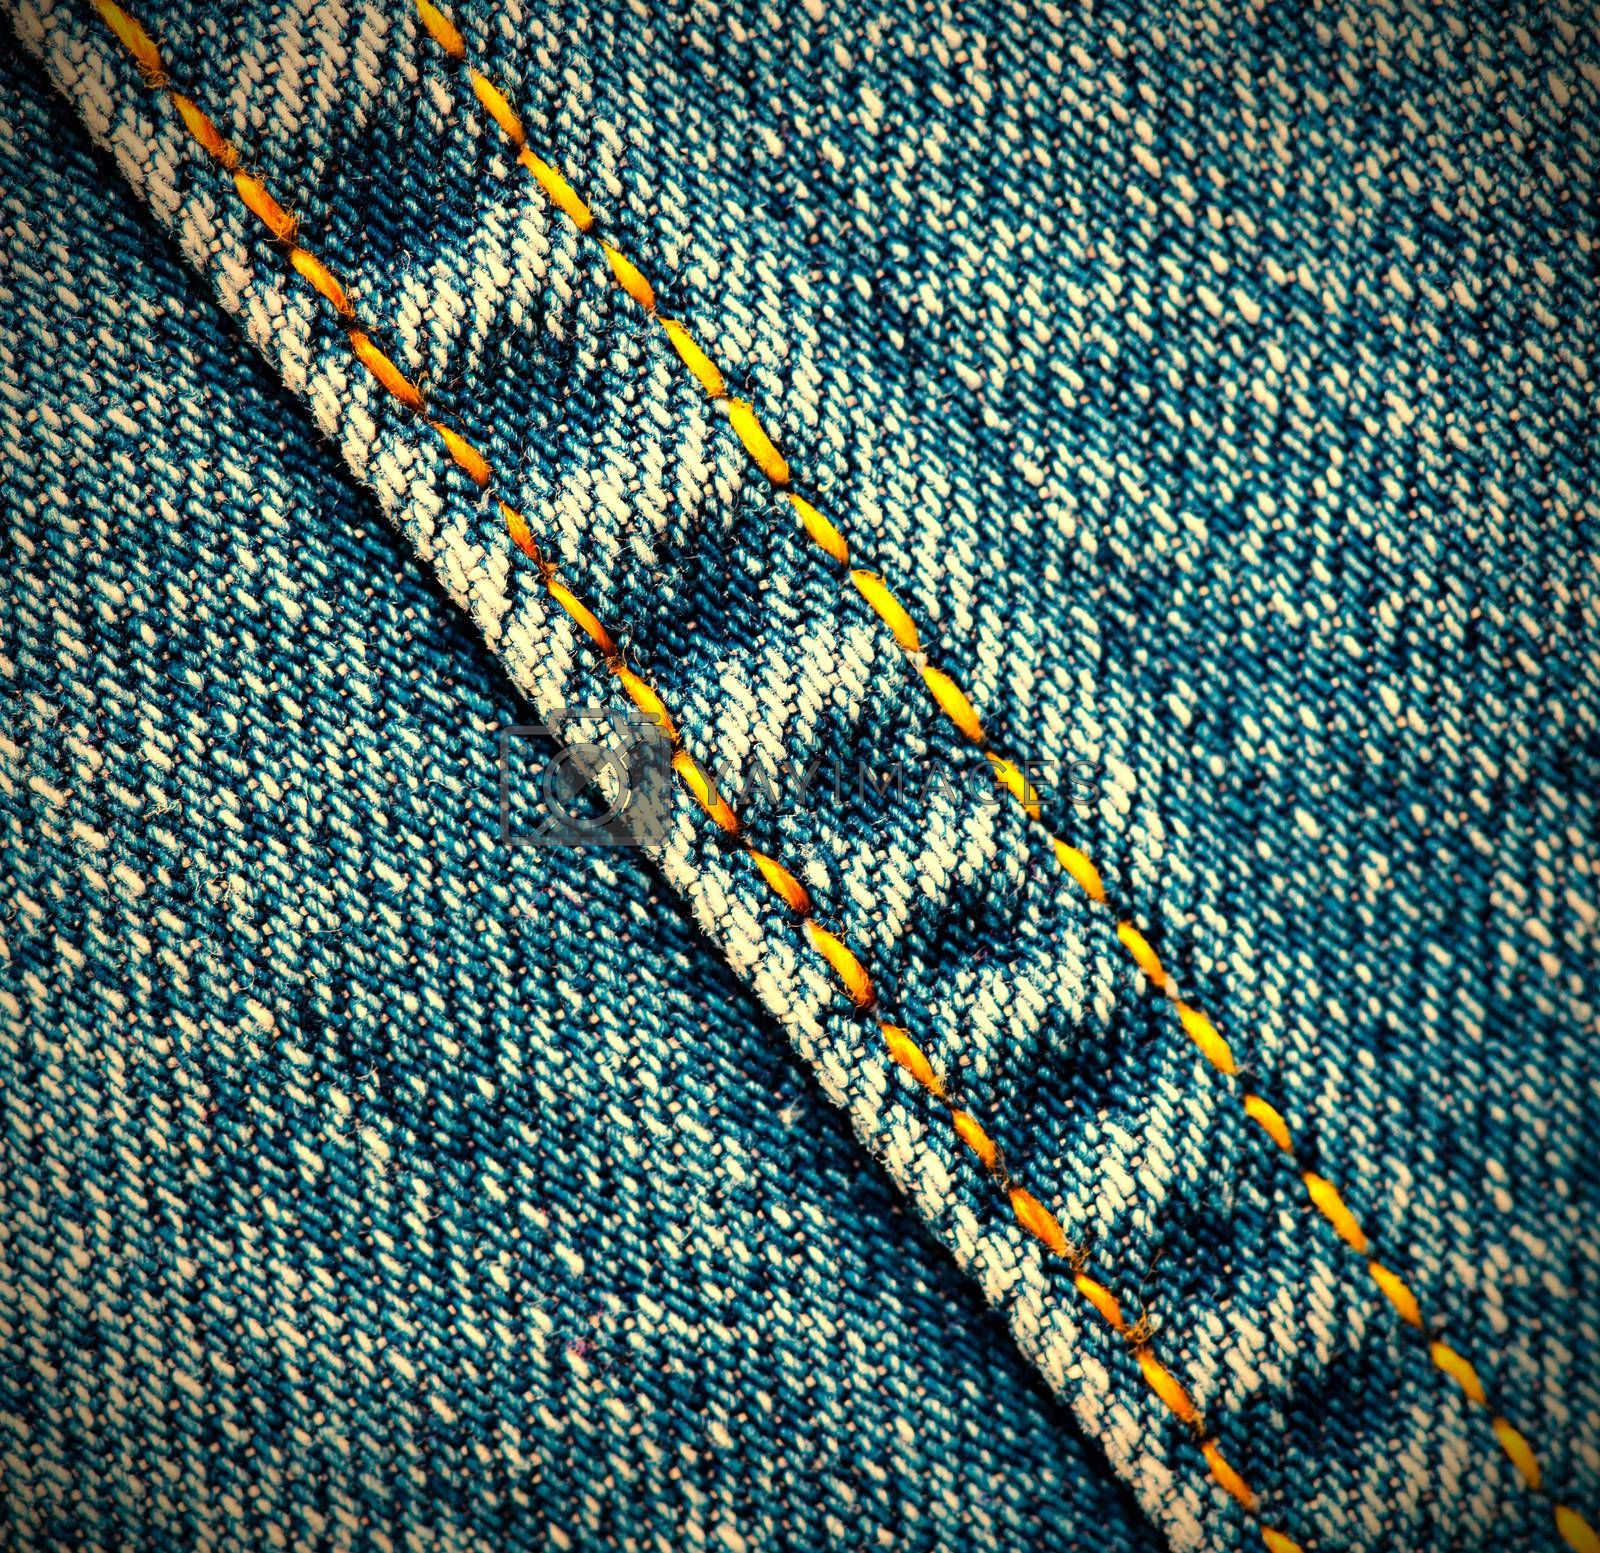 Royalty free image of old jeans background by Astroid